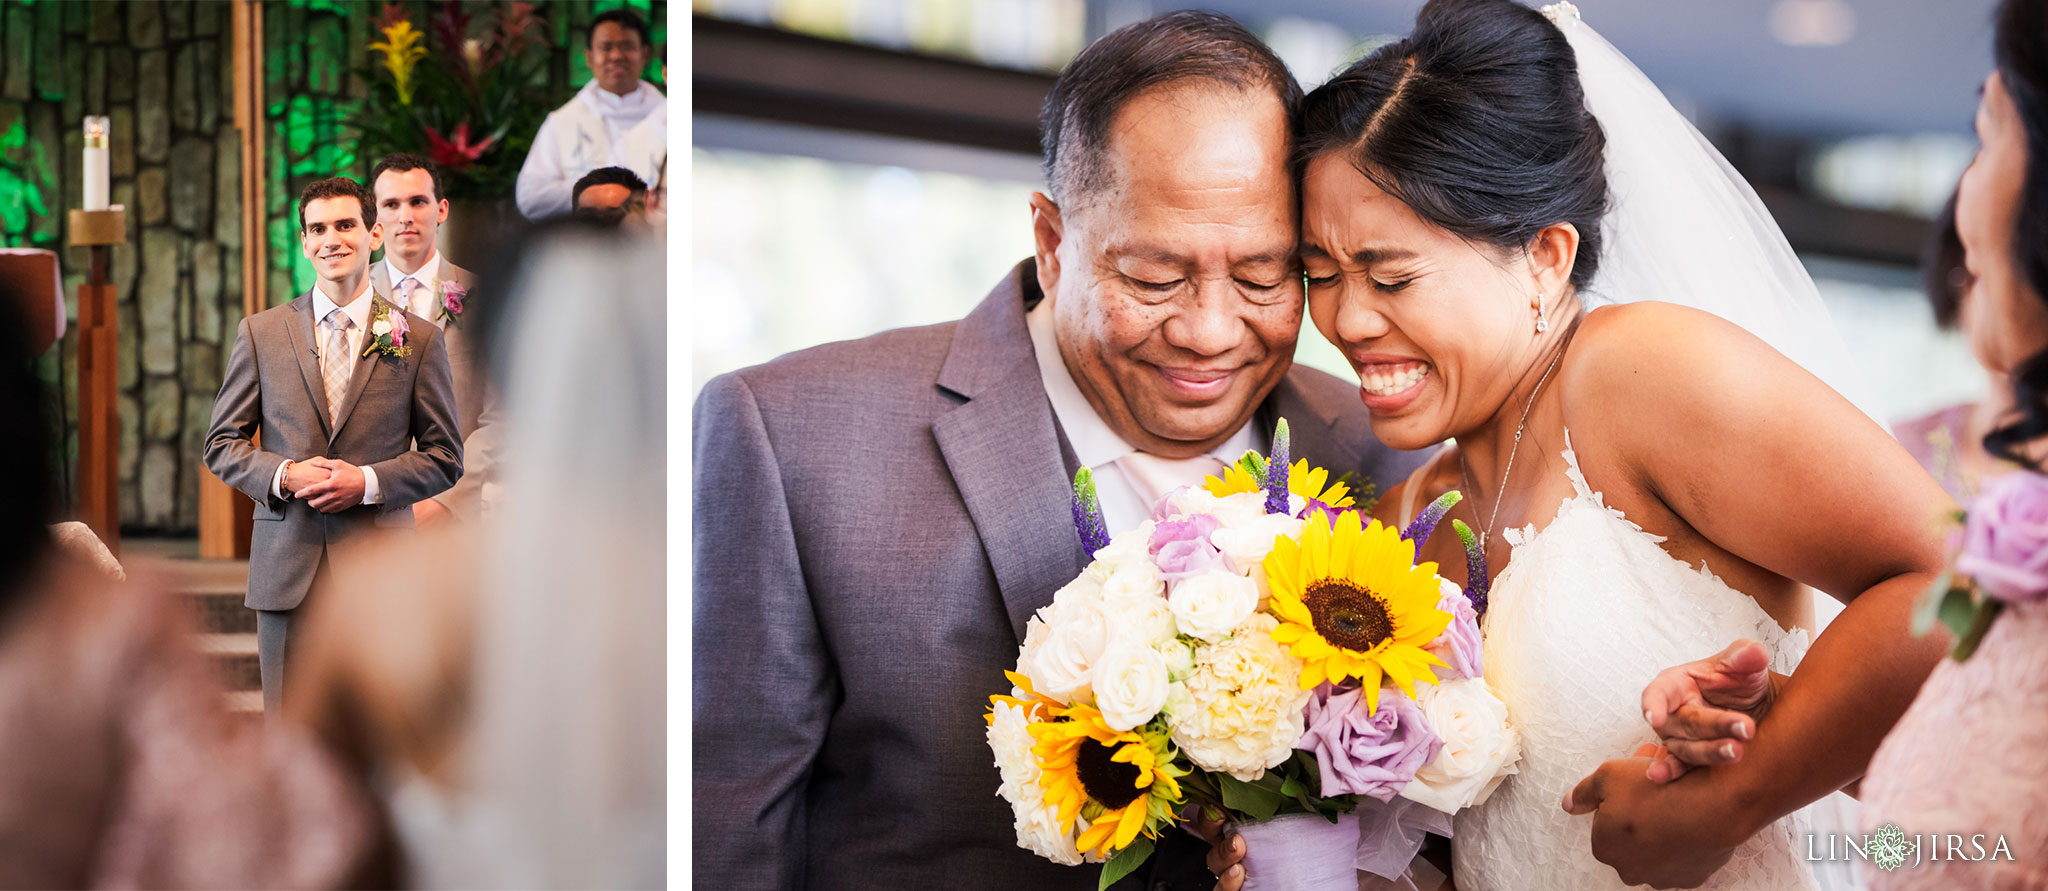 014 christ cathedral garden grove wedding ceremony photography